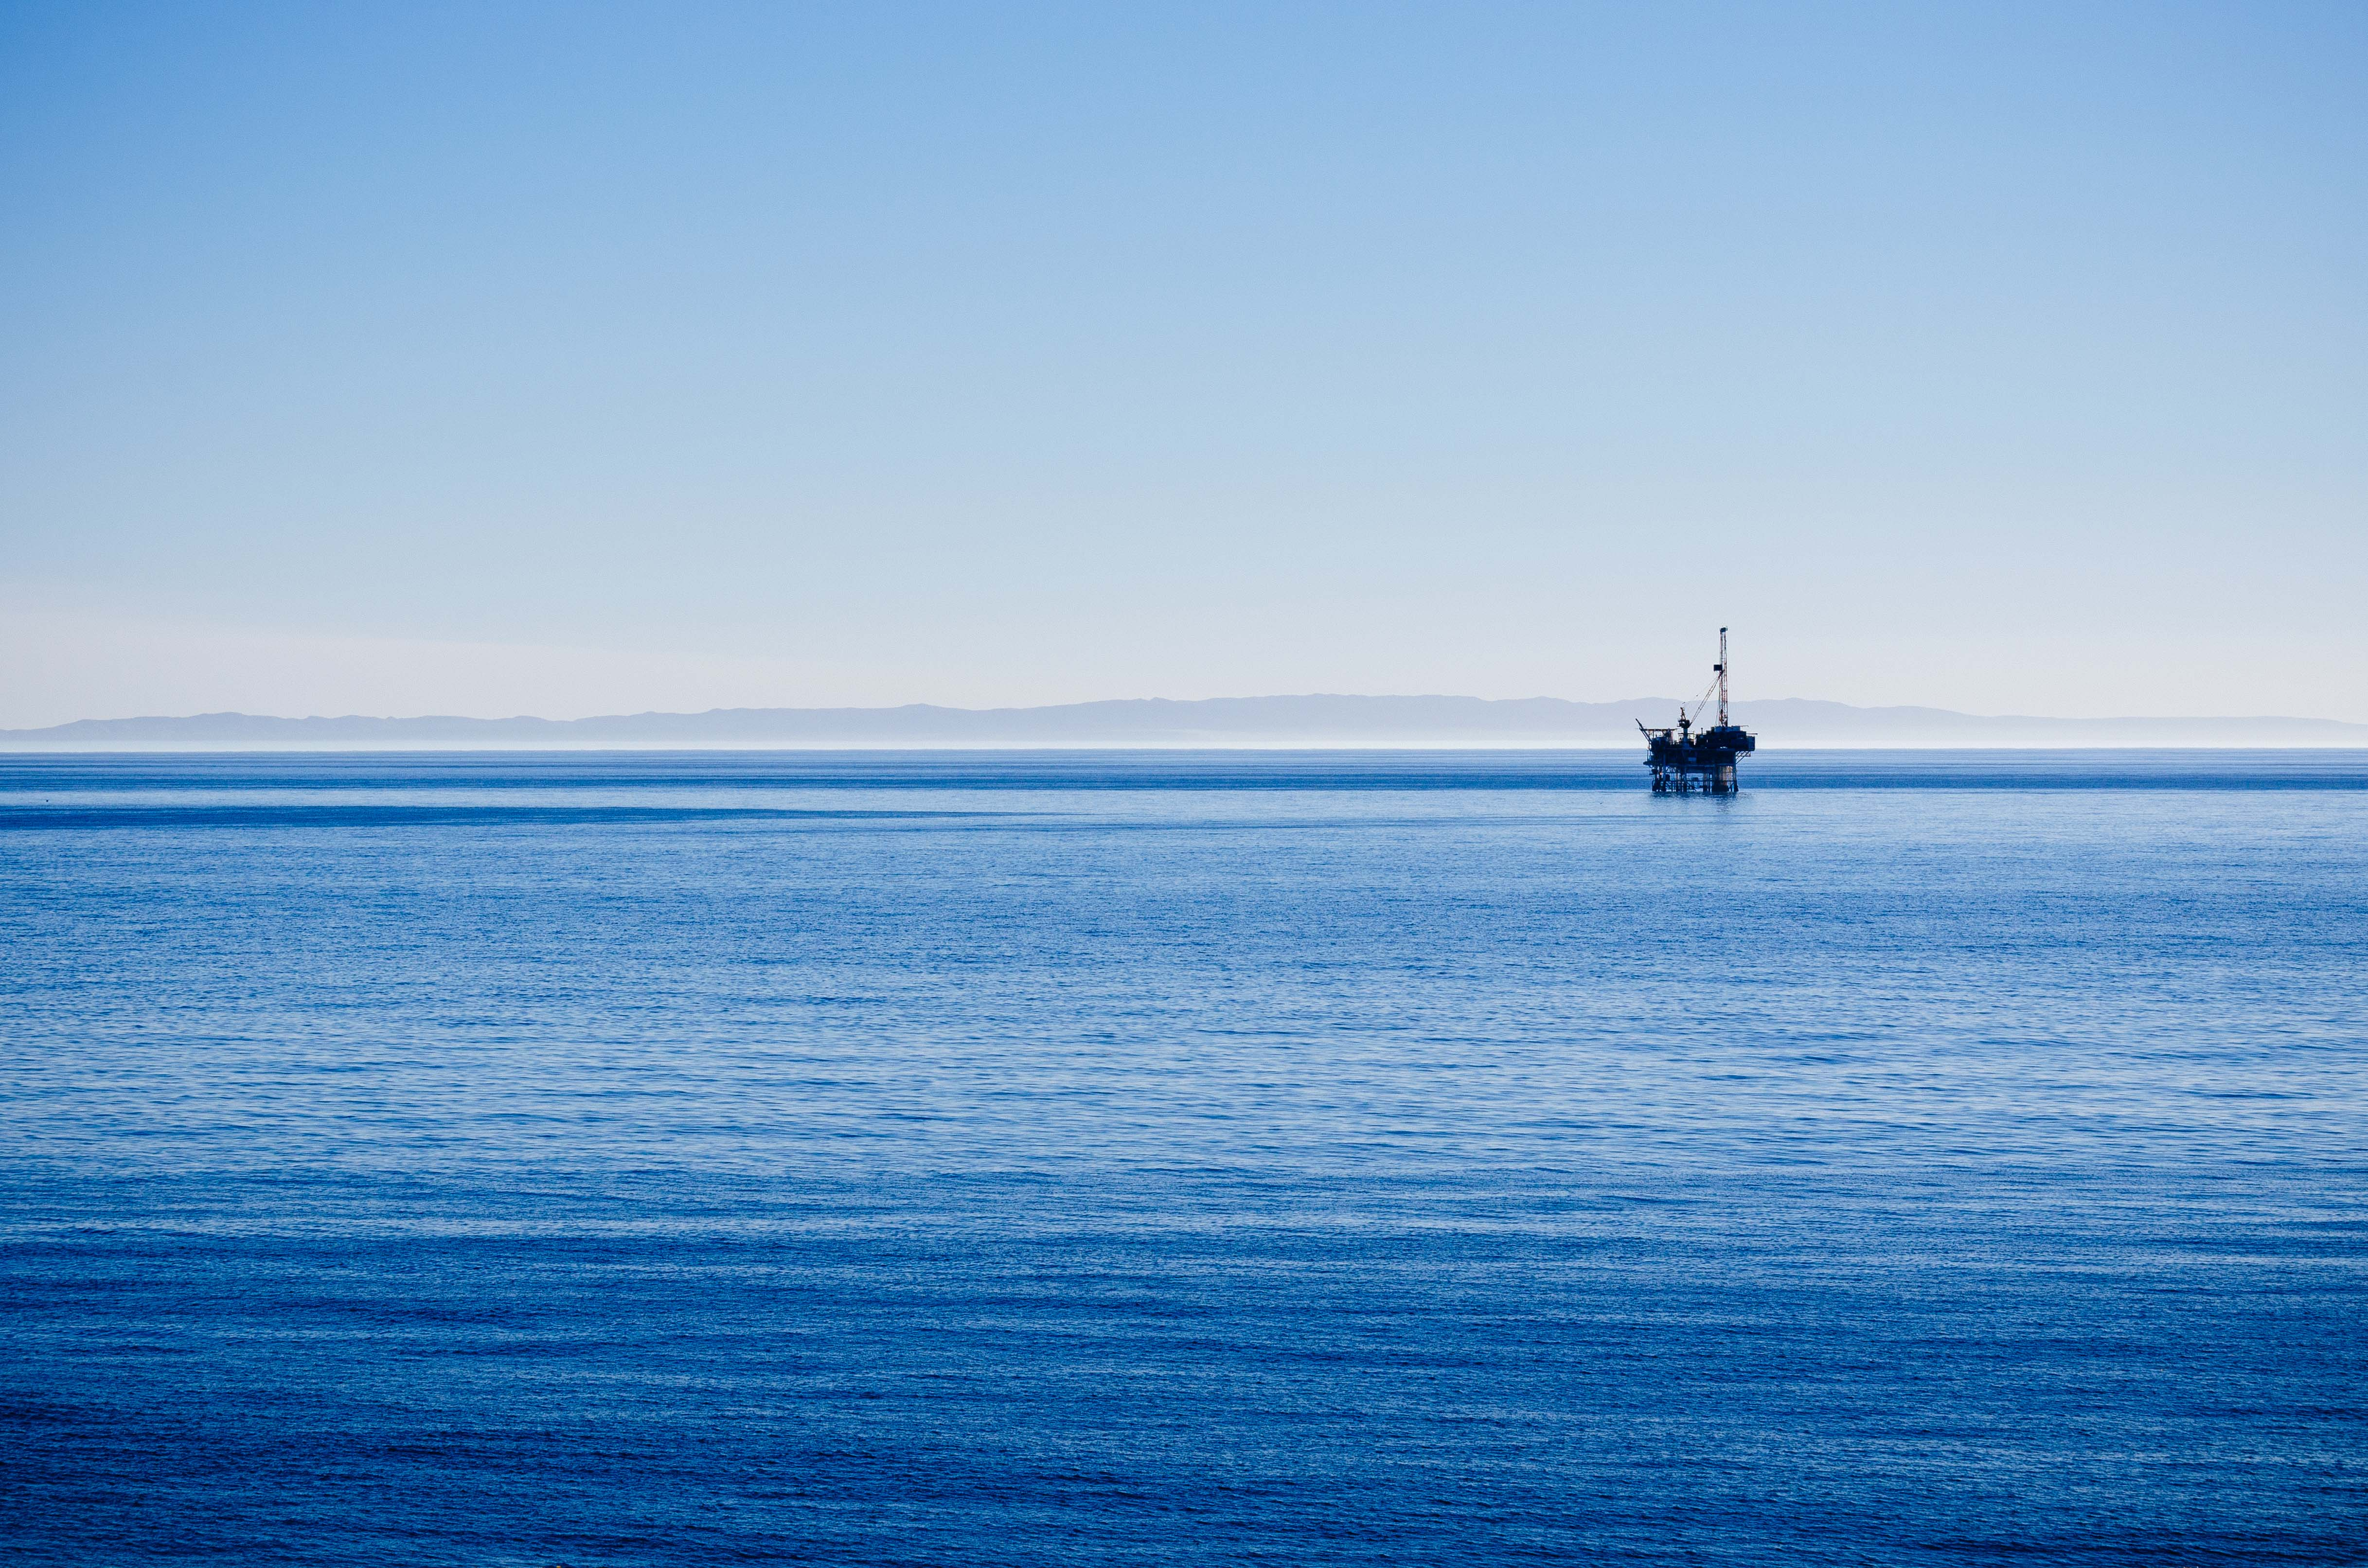 ART OF TRANSIT: An oil rig in the Santa Barbara Channel with one of the Channel Islands in the background (I think Anacapa). Photo by Steve Hymon.